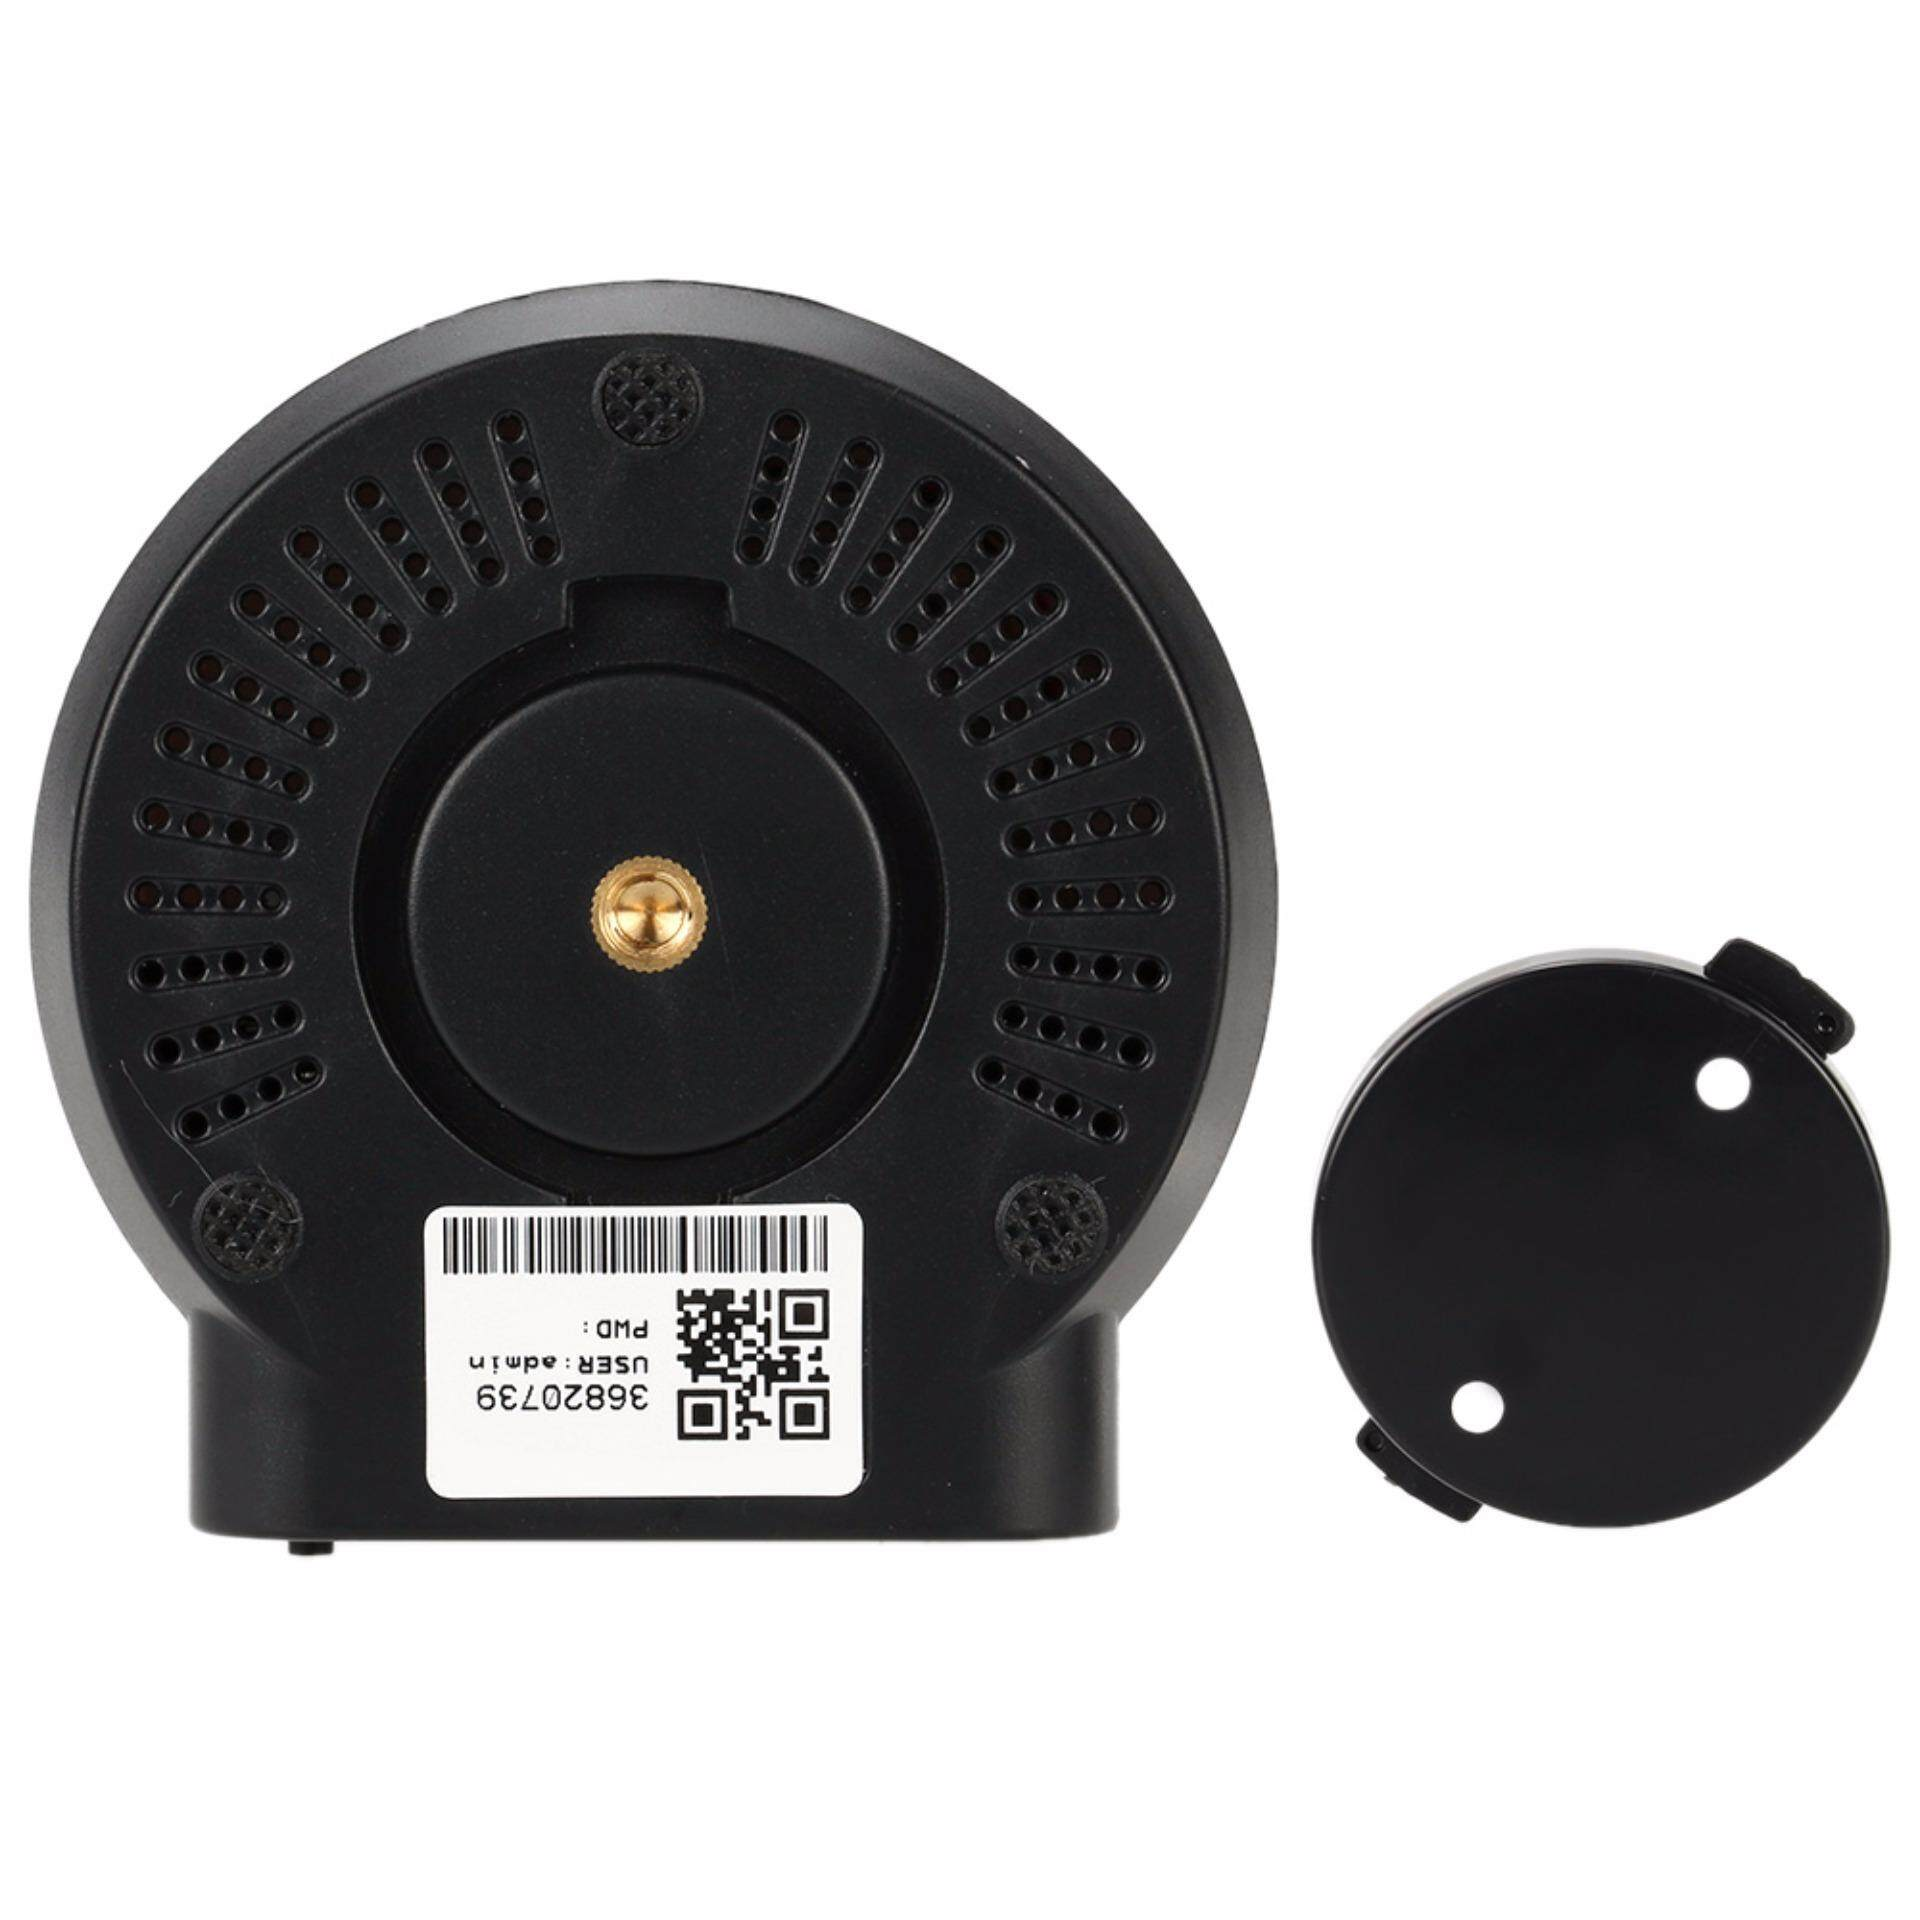 WIFI Smart Net Security Camera CCTV Support TF Card HD 720P V380